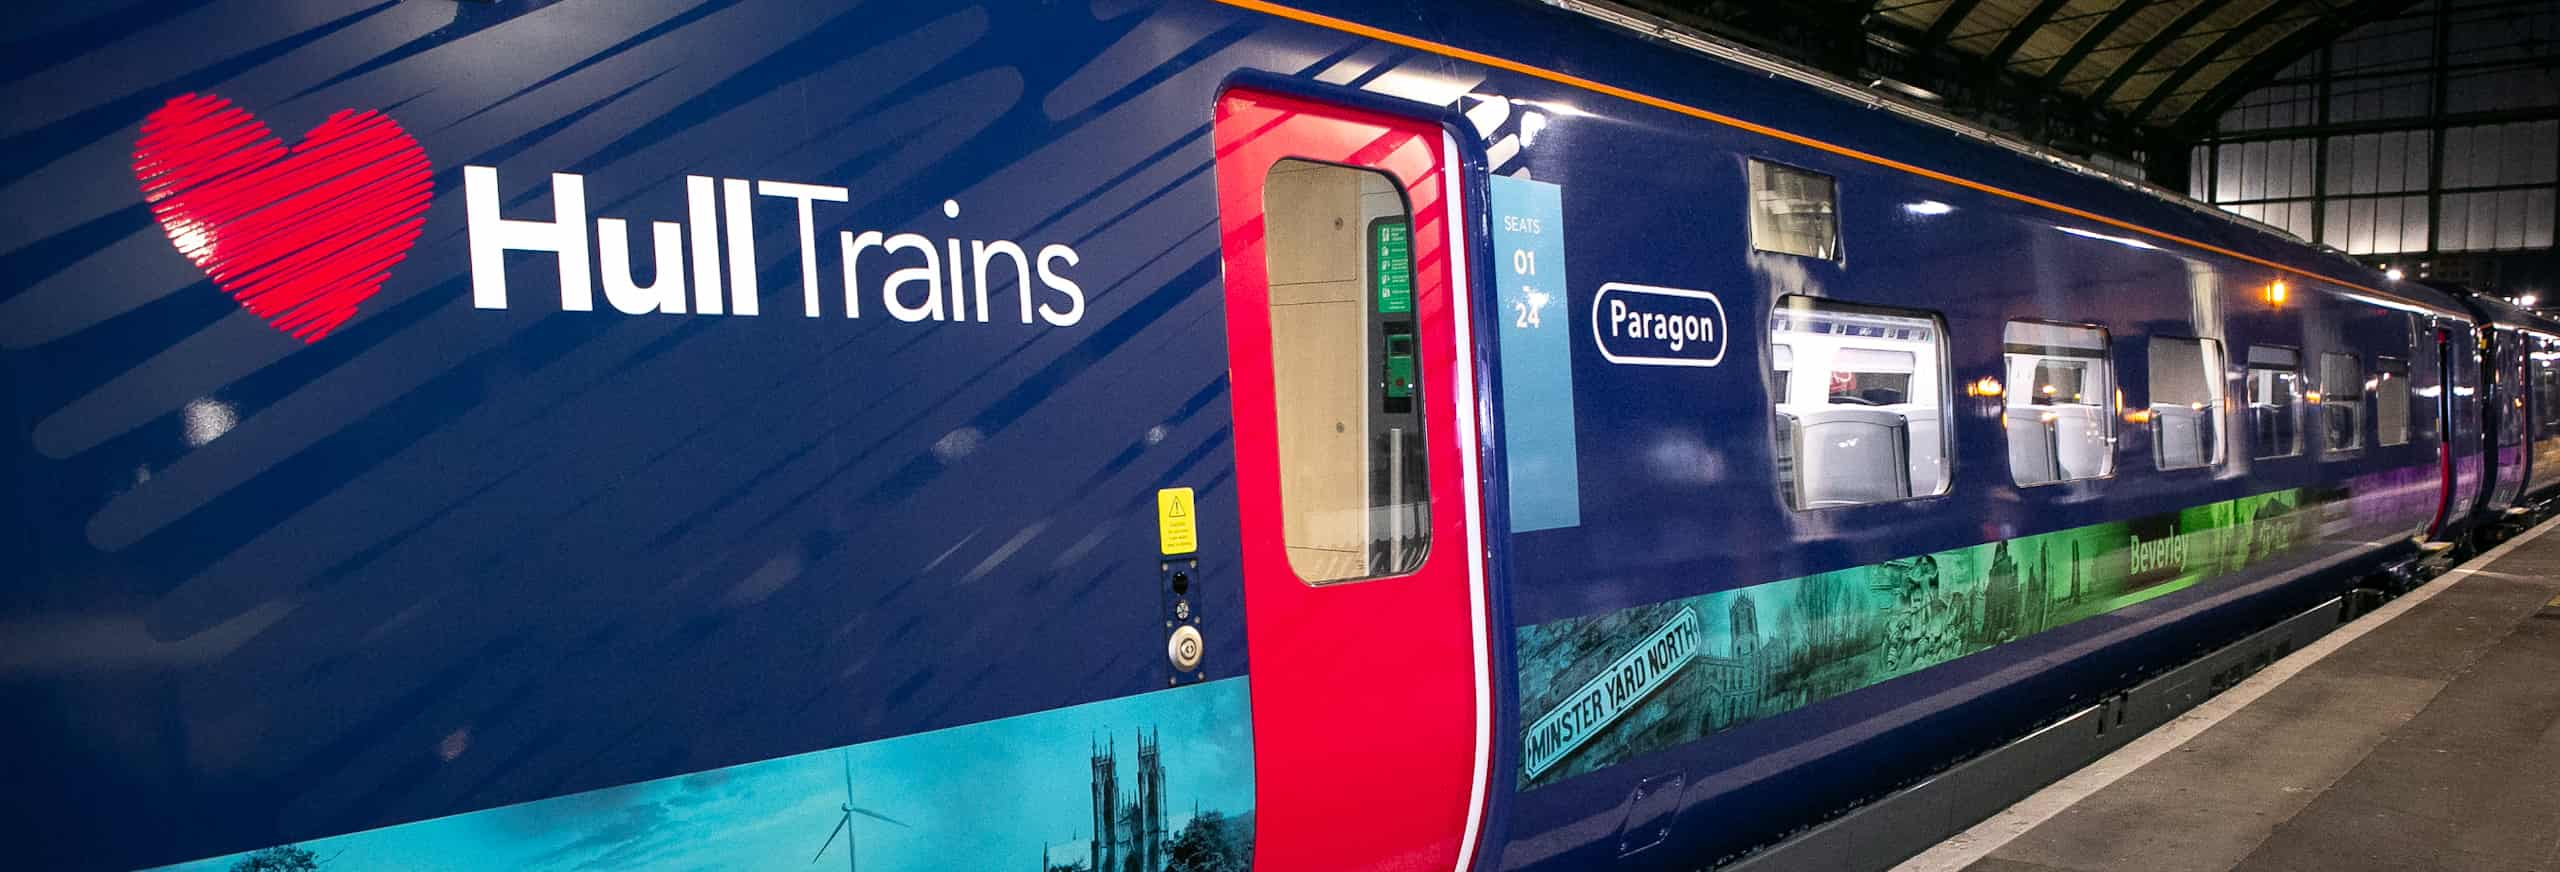 Hull Trains First Paragon Service